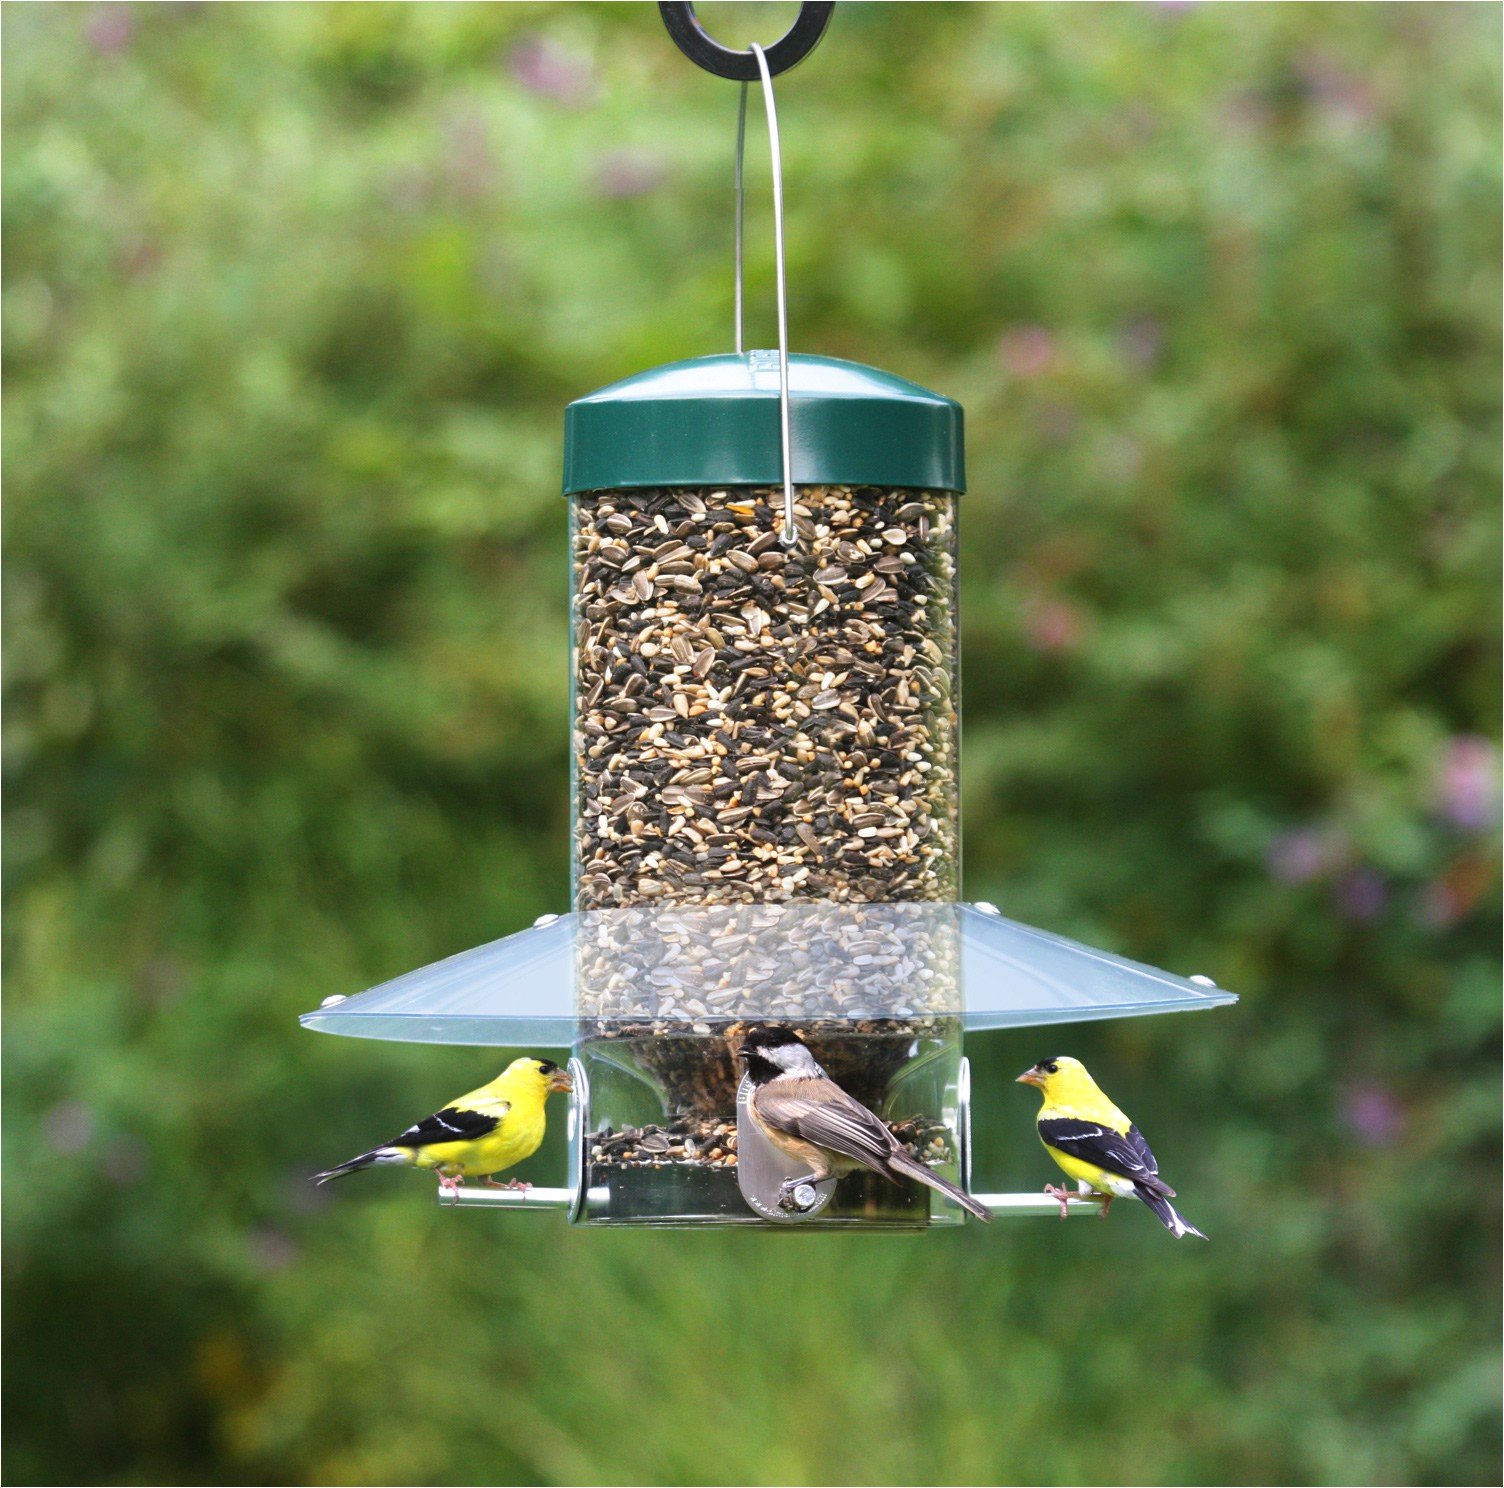 birds choice classic hanging feeder